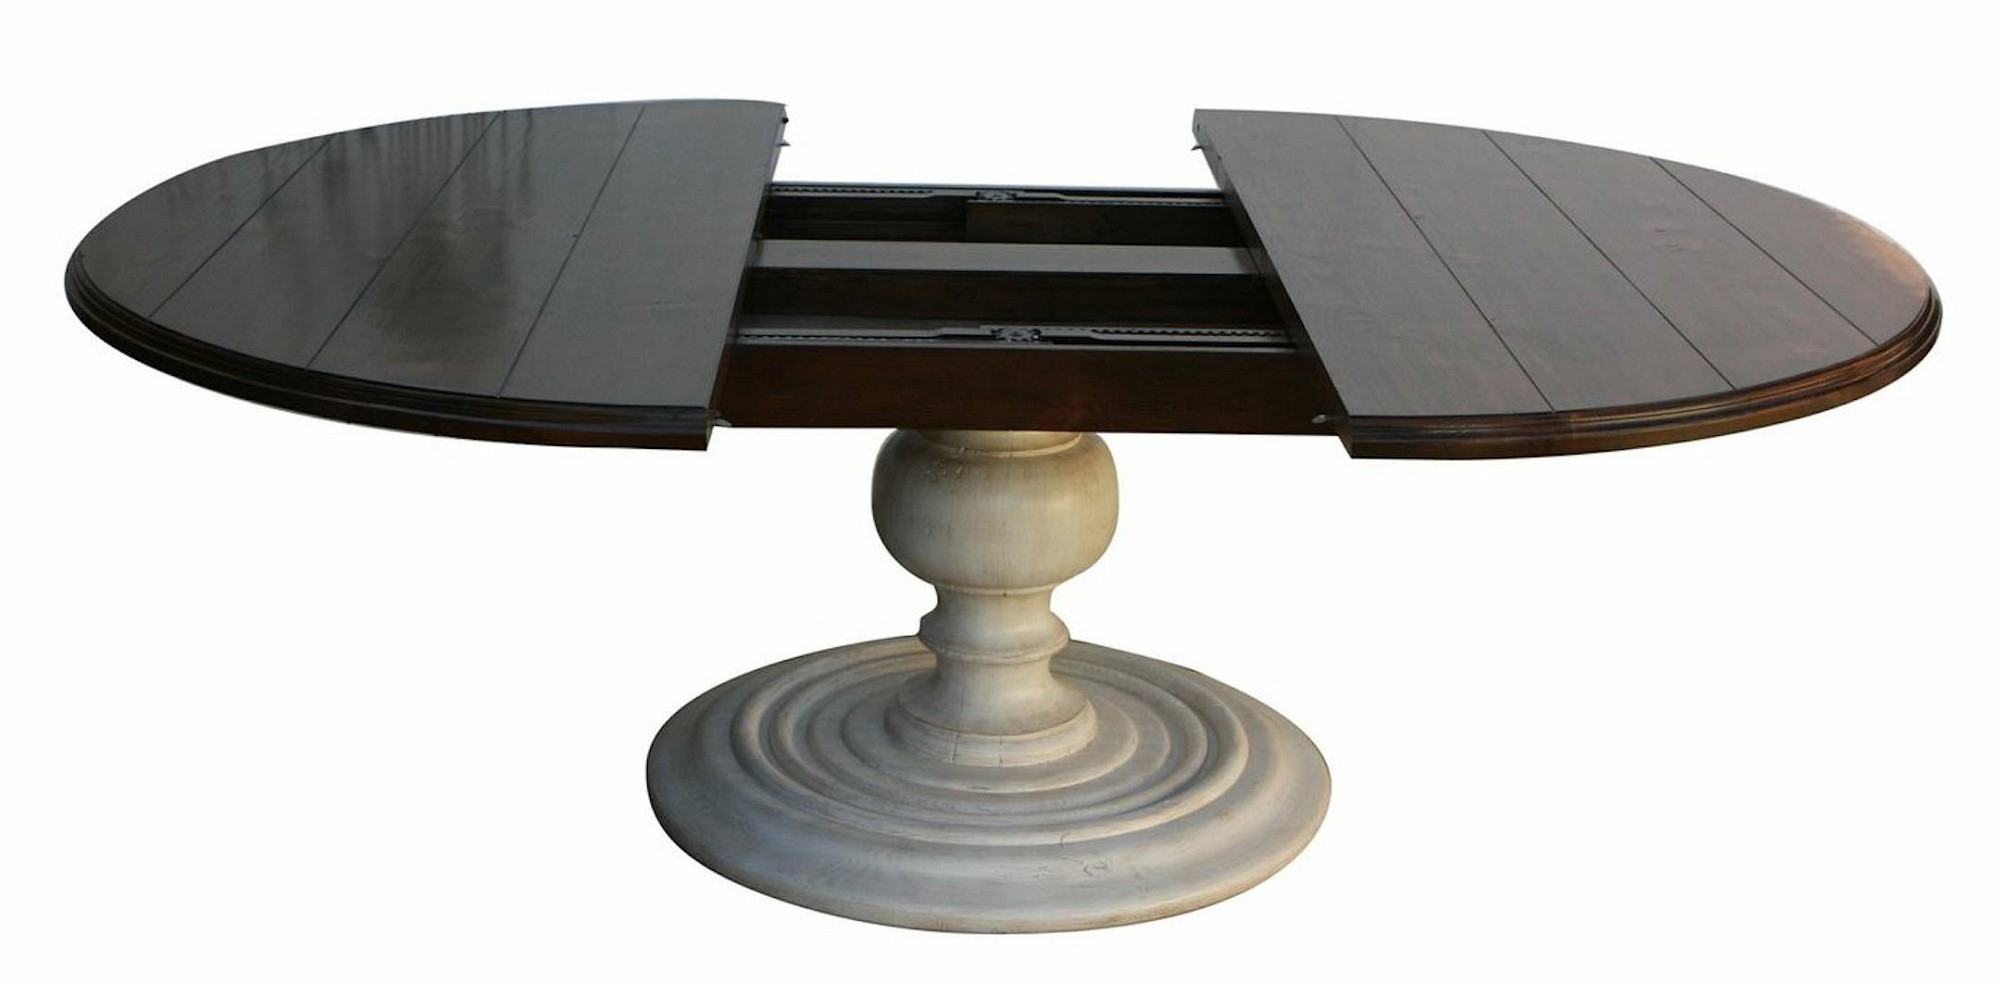 Fascinating Pedestal Dining Table With Leaf Cole Papers With Most Recently Released Benchwright Round Pedestal Dining Tables (View 14 of 25)